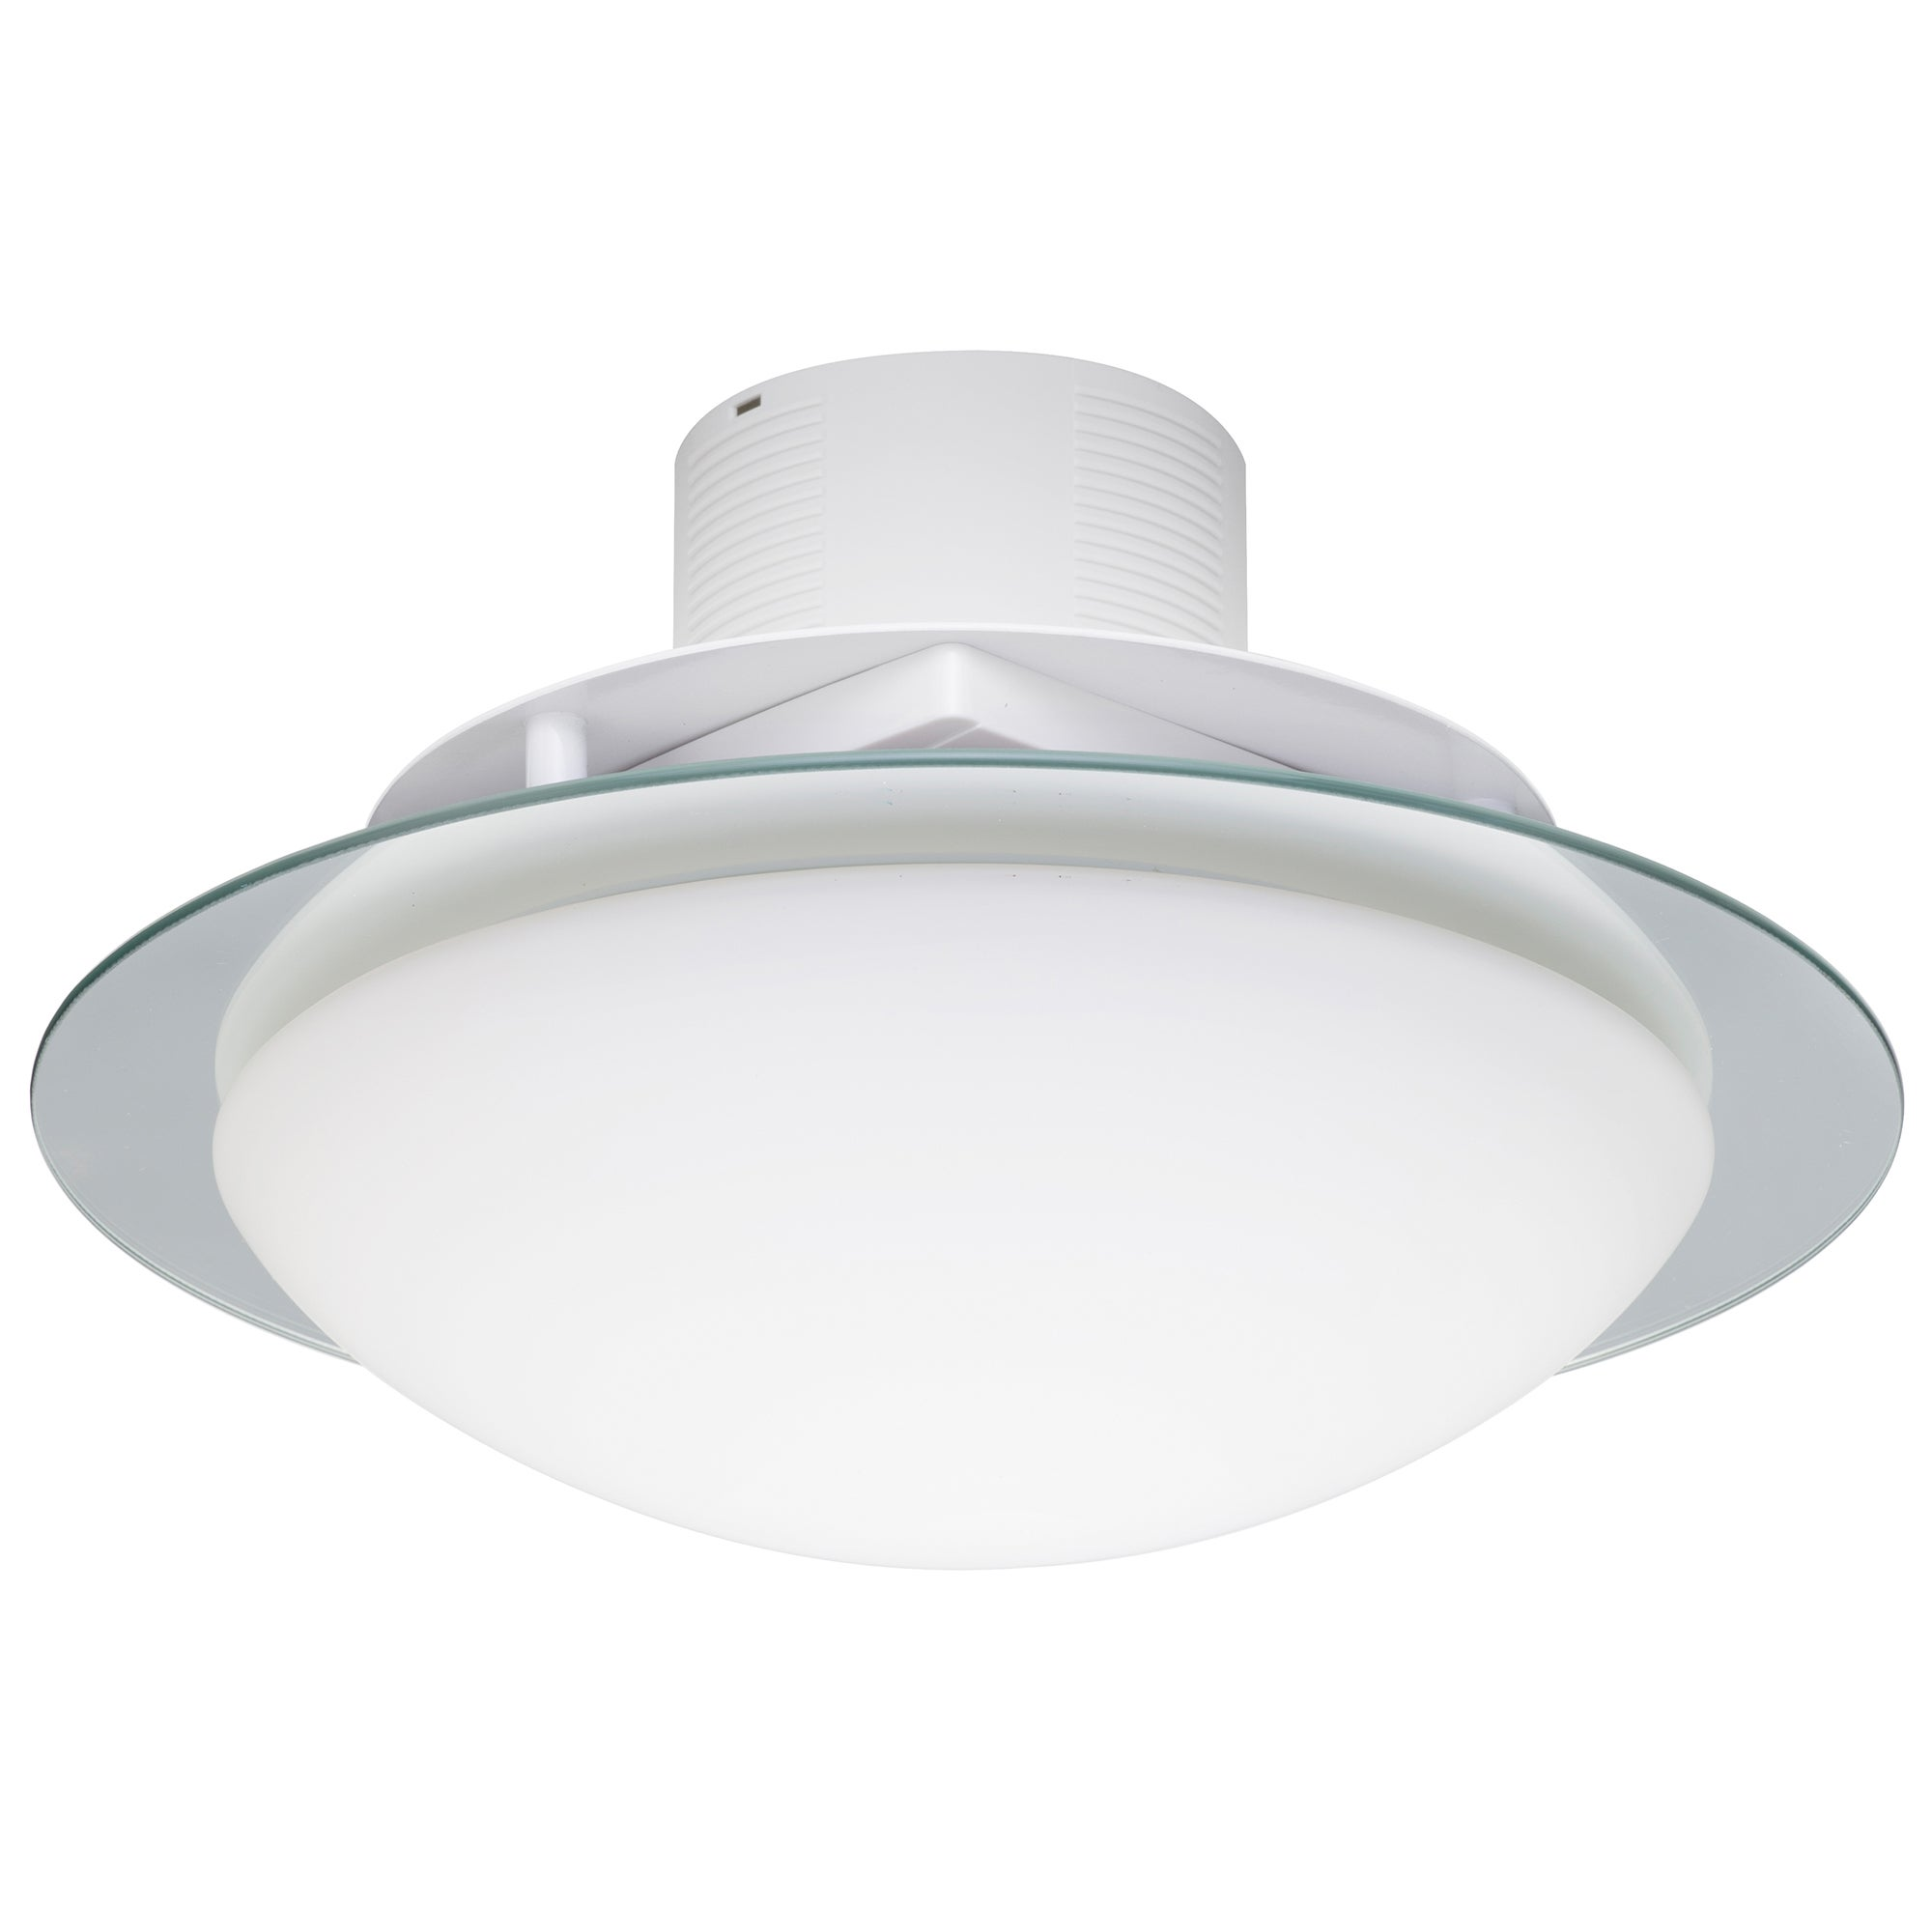 Image of Invierno 2 Light Flush Ceiling Fitting and Extractor Fan Chrome